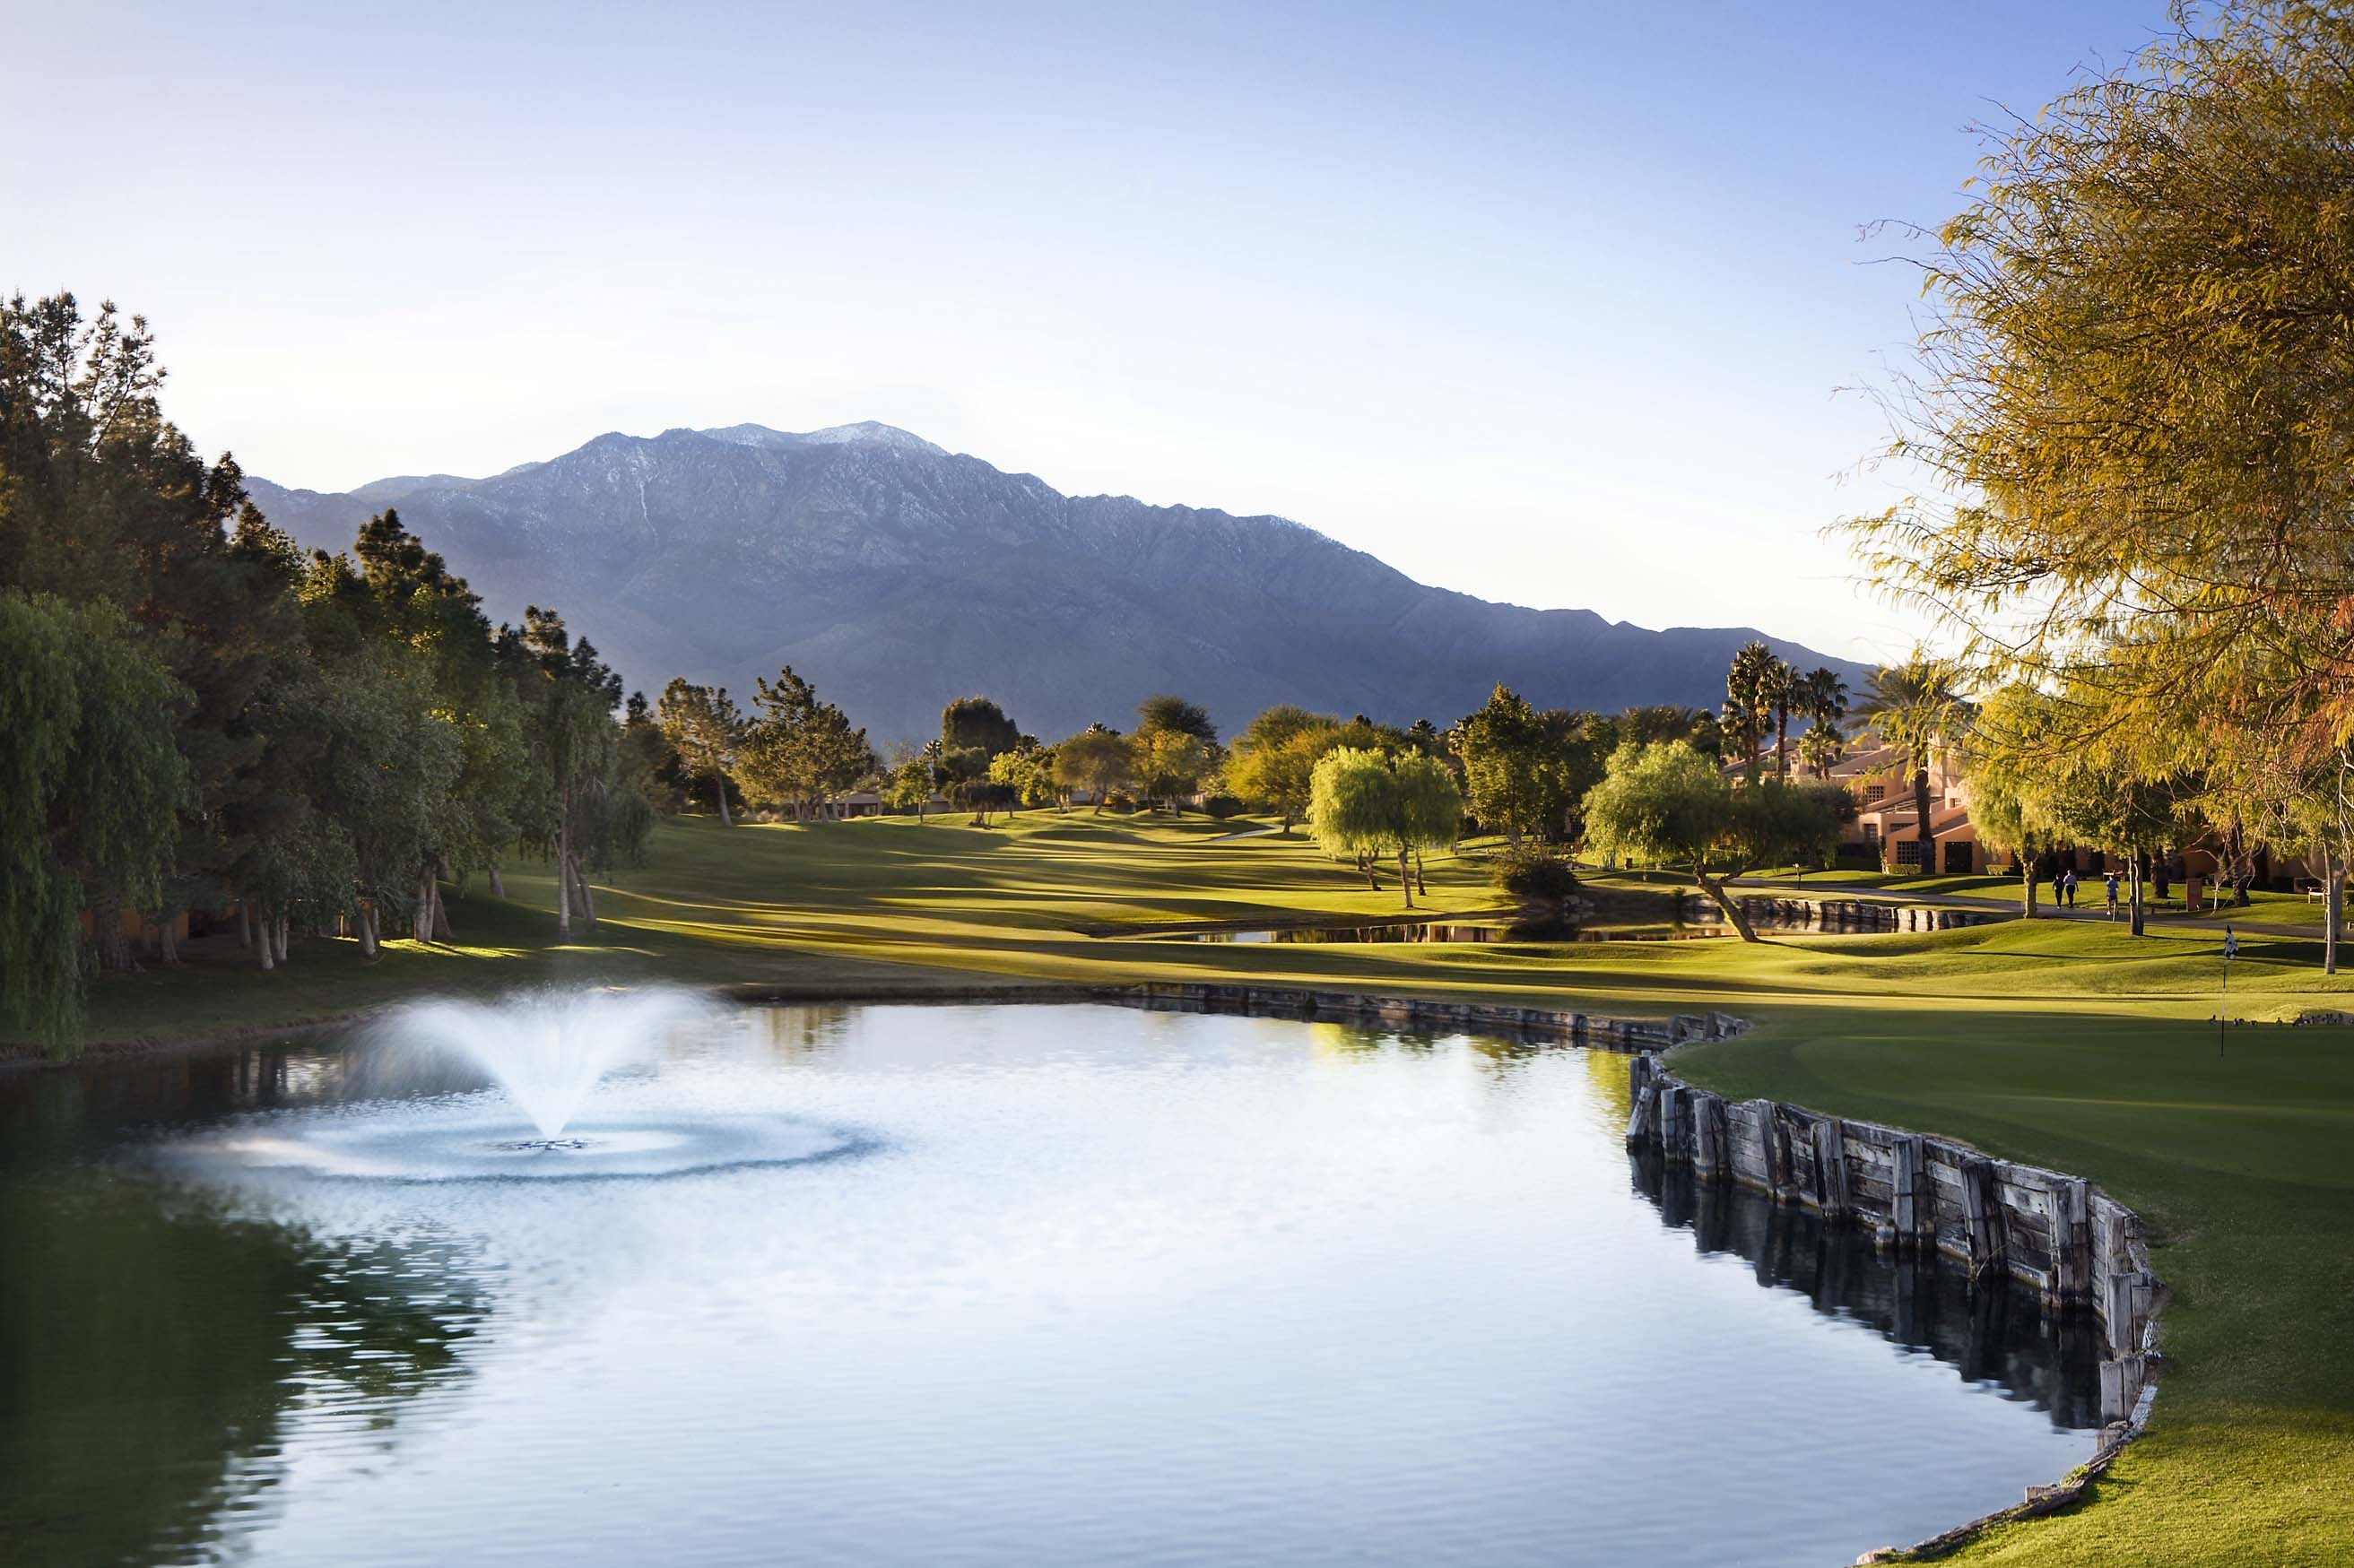 Mission Hills Ca >> Westin Mission Hills Resort 4 night 4 round Palm Springs ...